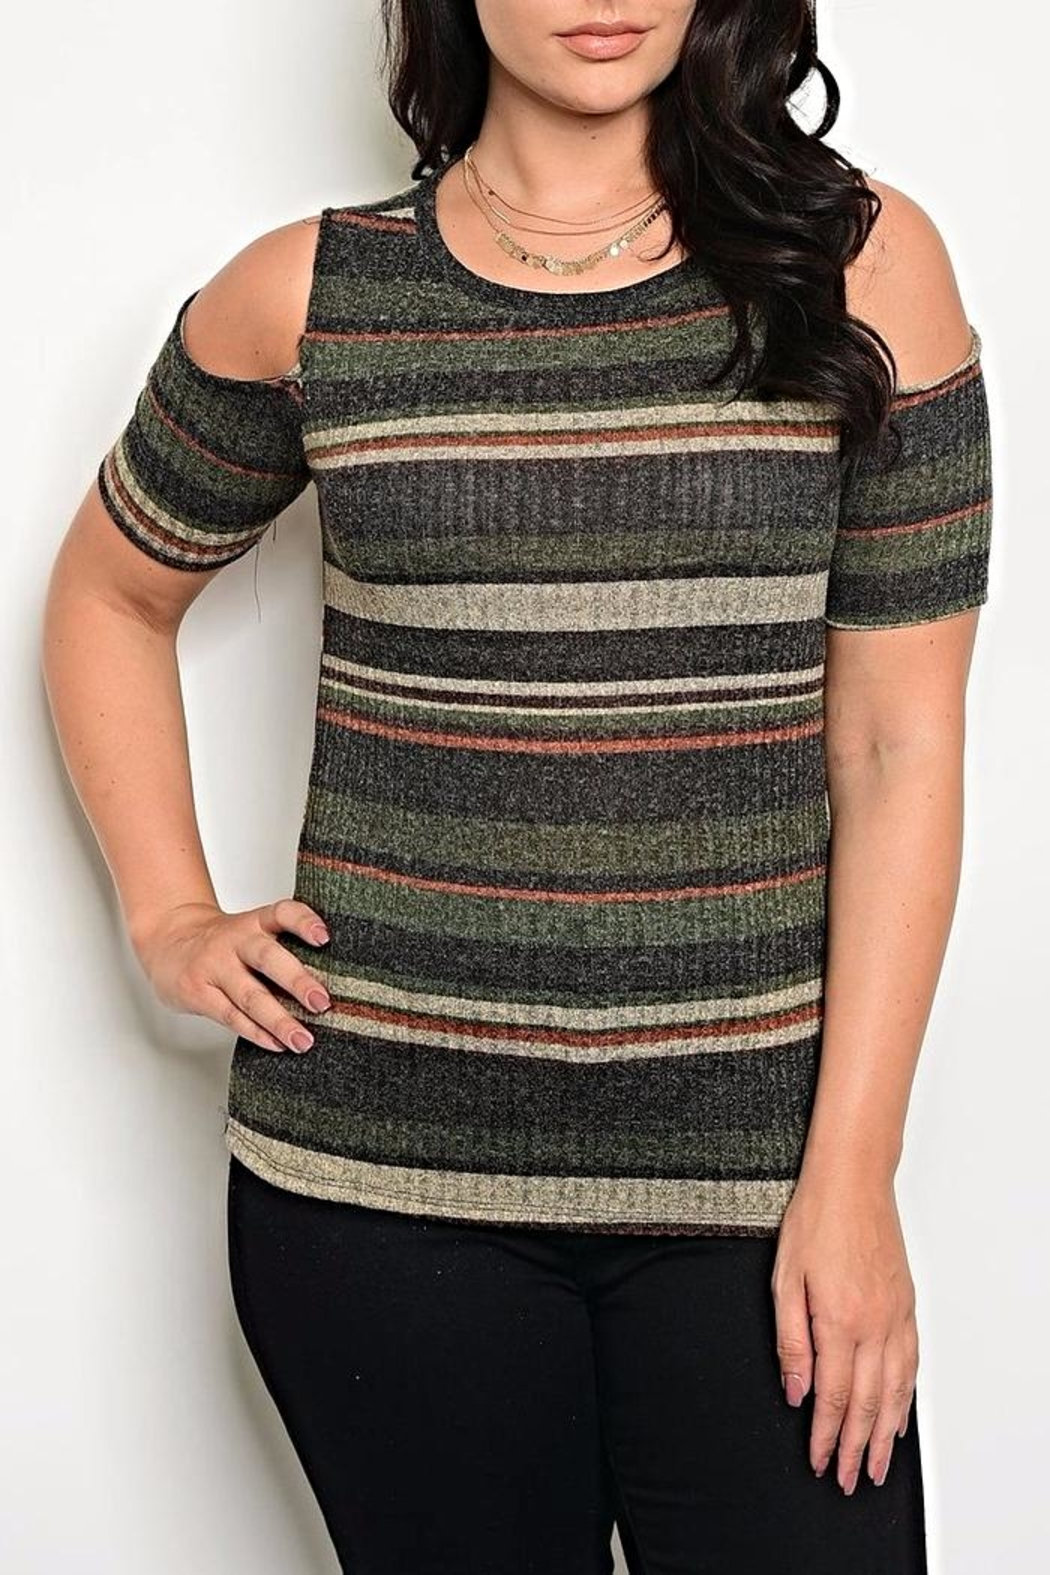 Zenobia Charcoal Shoulder Sweater - Main Image